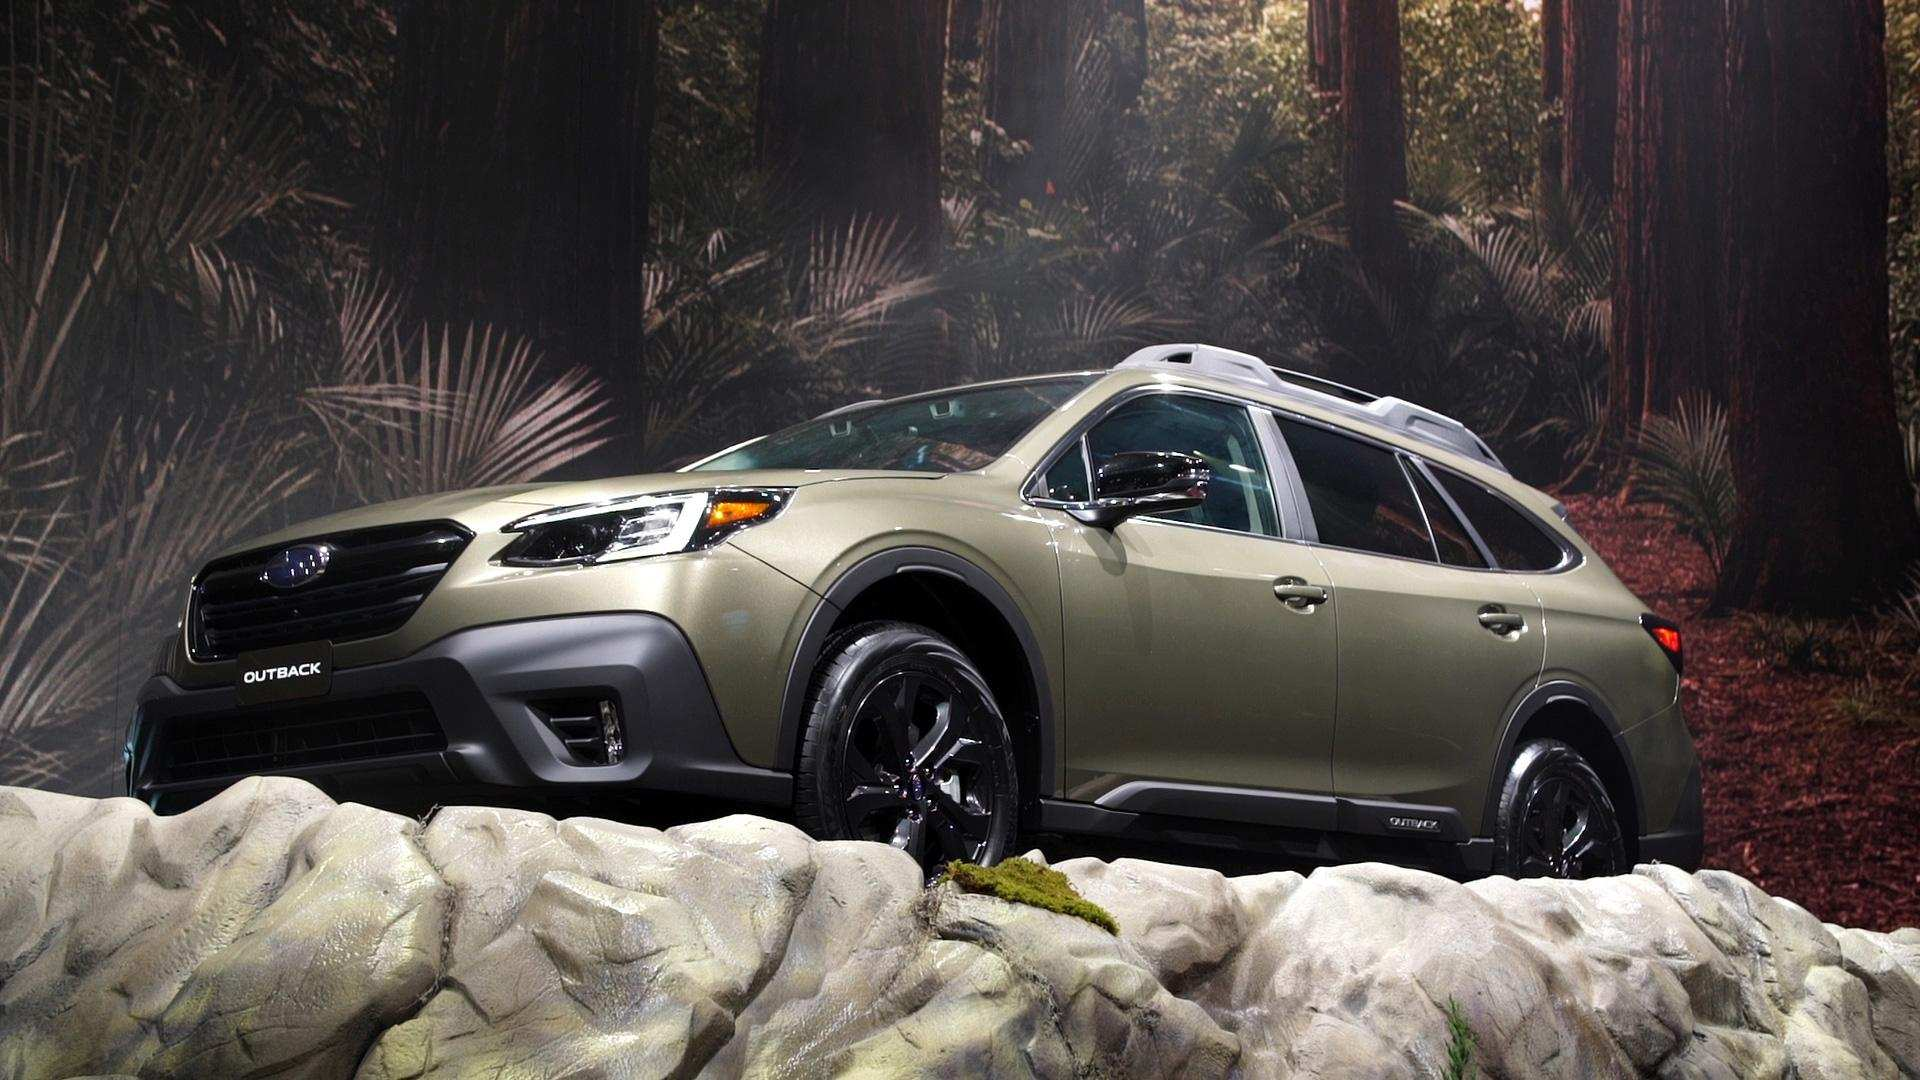 22 All New 2020 Subaru Outback Release Date Research New